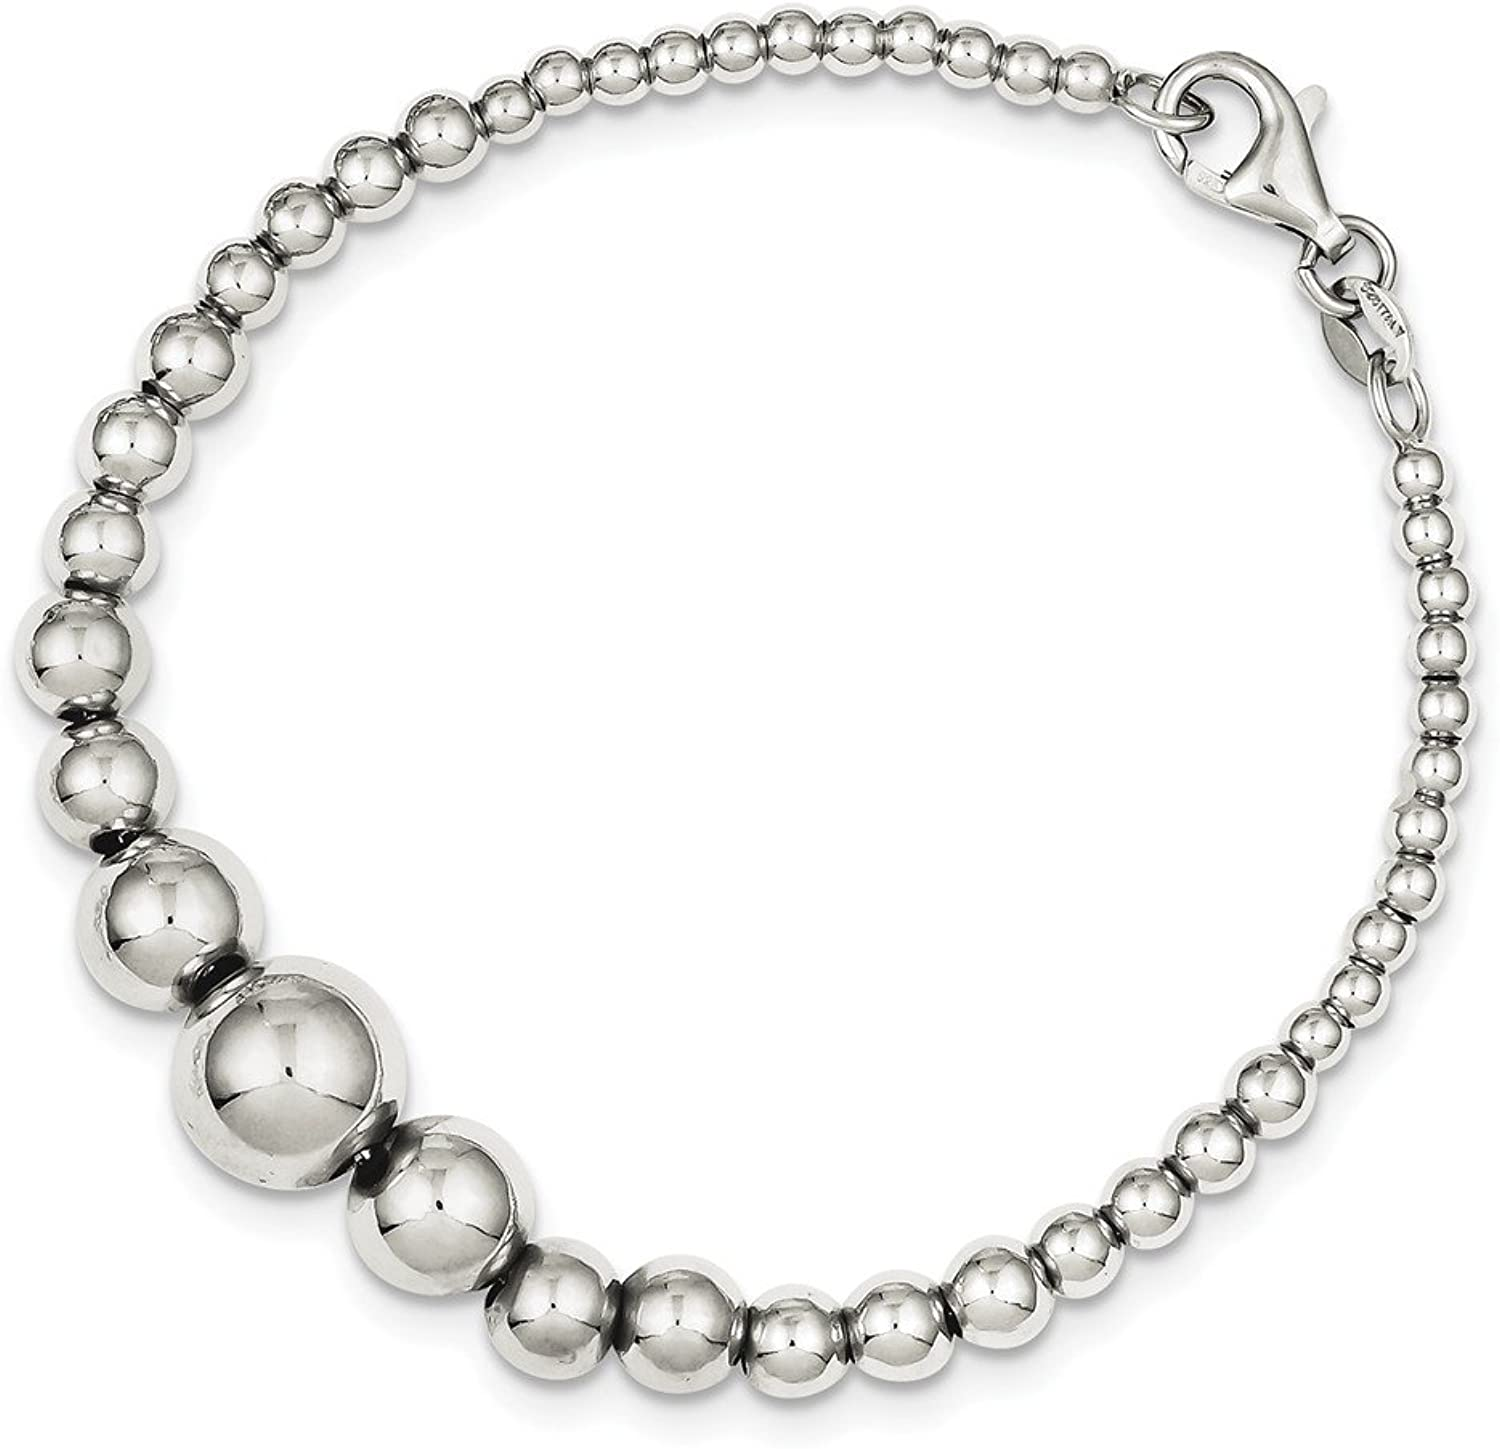 Beautiful Sterling silver 925 sterling Sterling Silver Polished Graduated Round Bead Bracelet